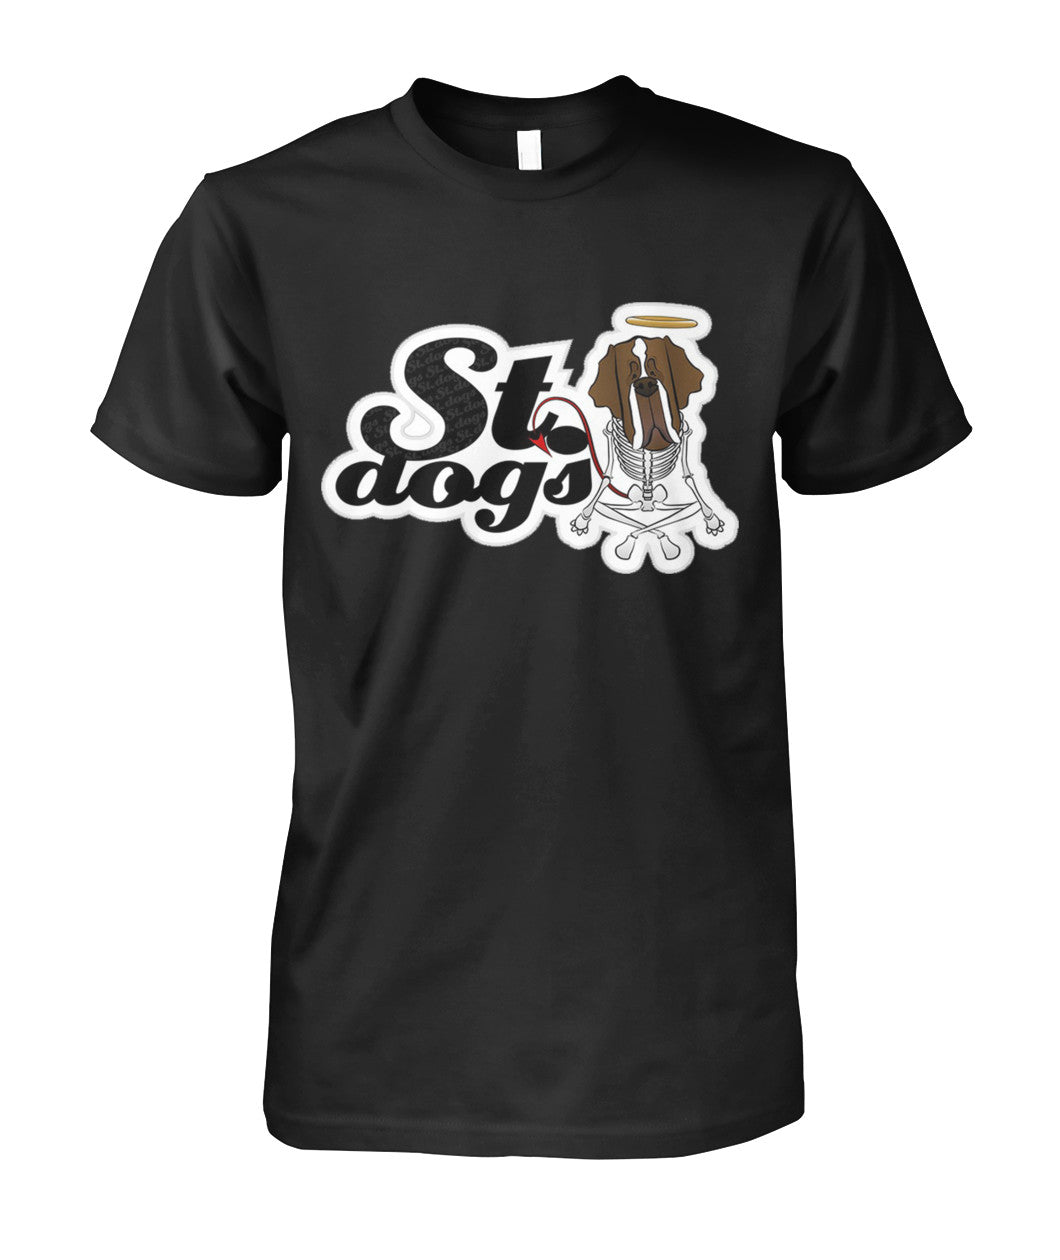 ST DOGS T-SHIRT